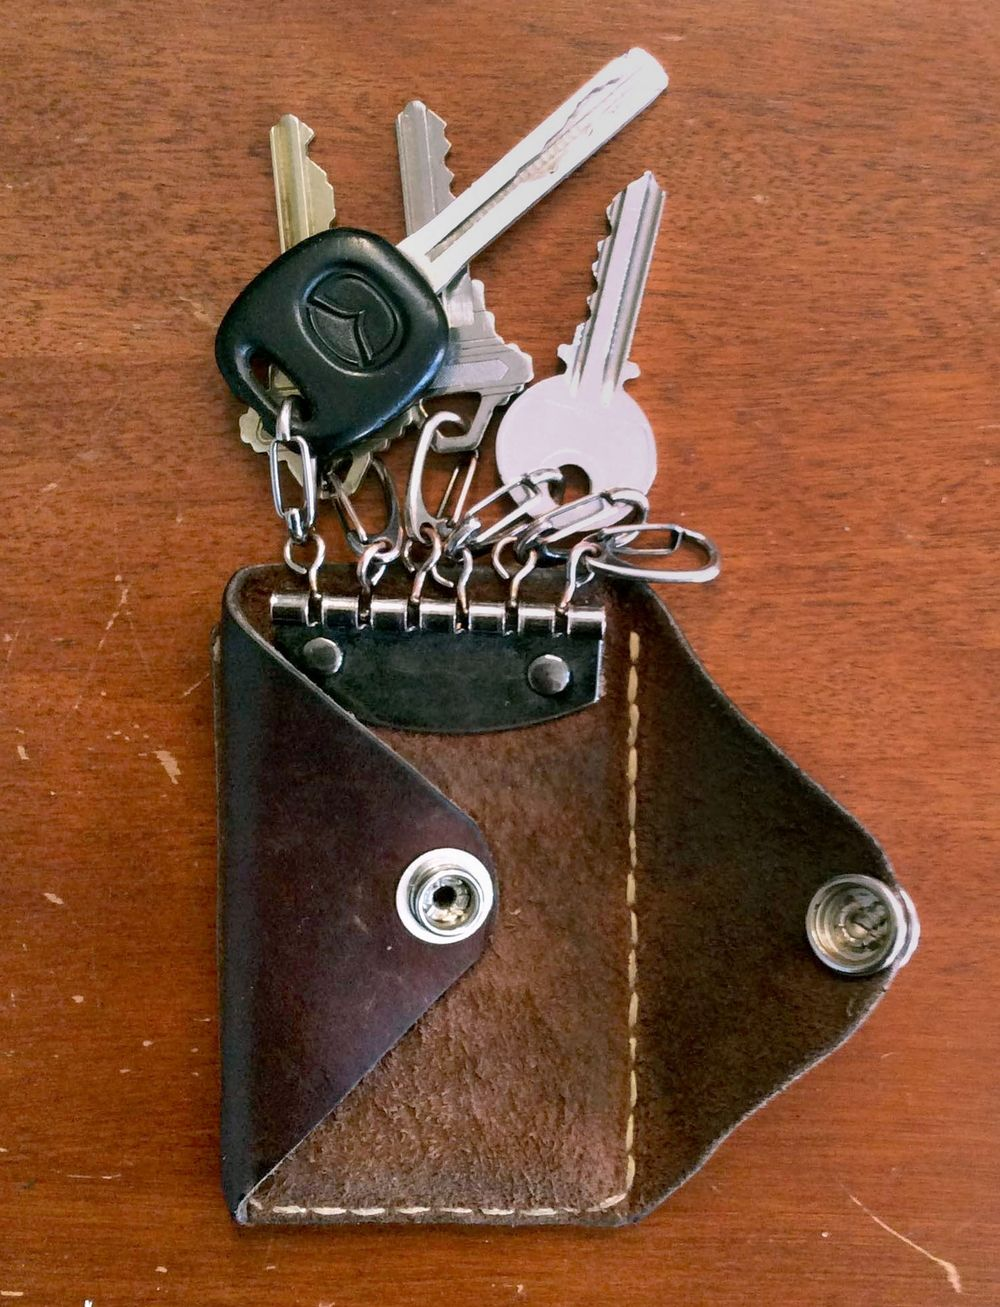 How To Carry Less Stuff Pocket Wallet And Key Holder Tutorial Malory Johnson Key Holder Leather Pocket Wallet Pocket Wallet